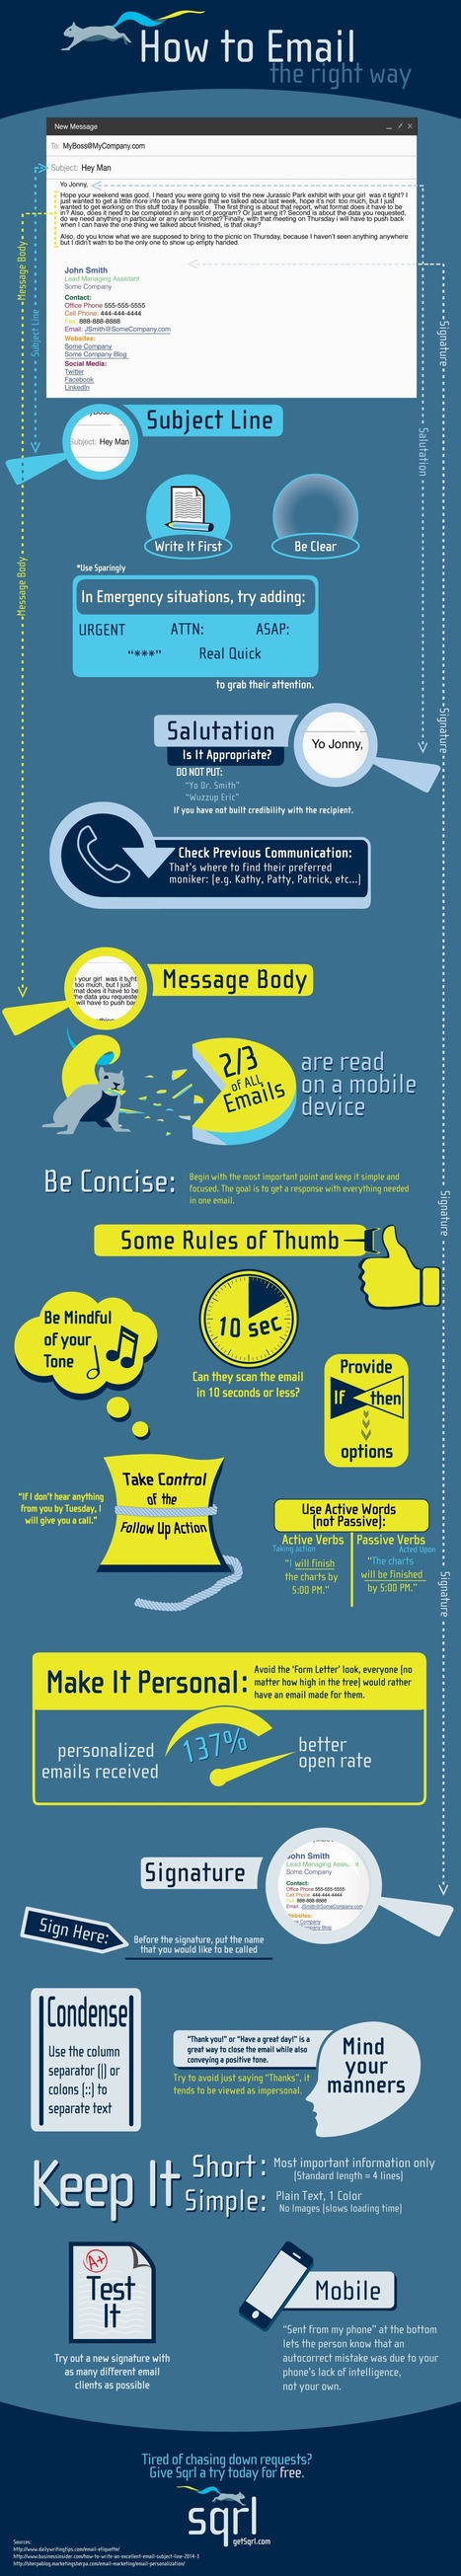 Doing Email Right #infographic | email | Scoop.it